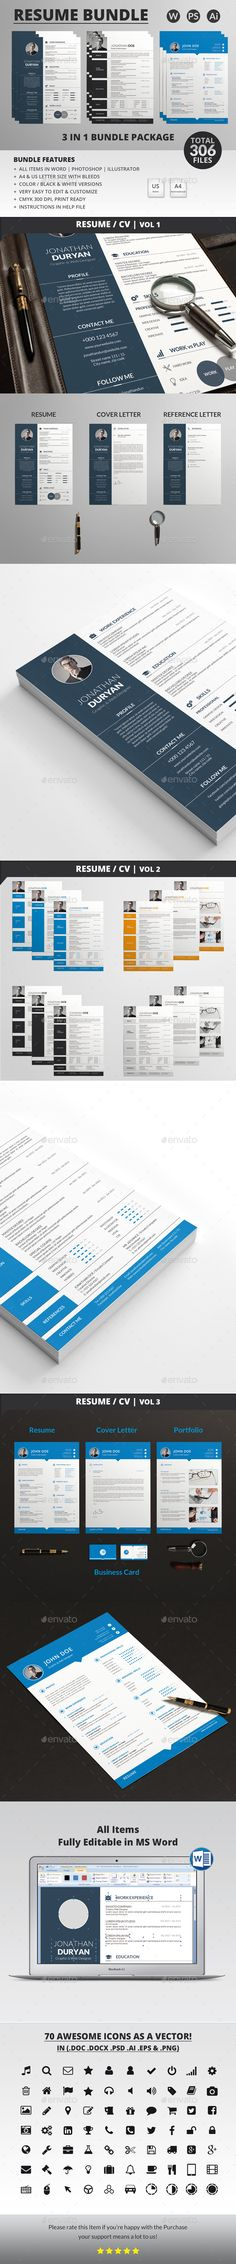 Resume Template PSD Download here http\/\/graphicrivernet\/item - http resume download